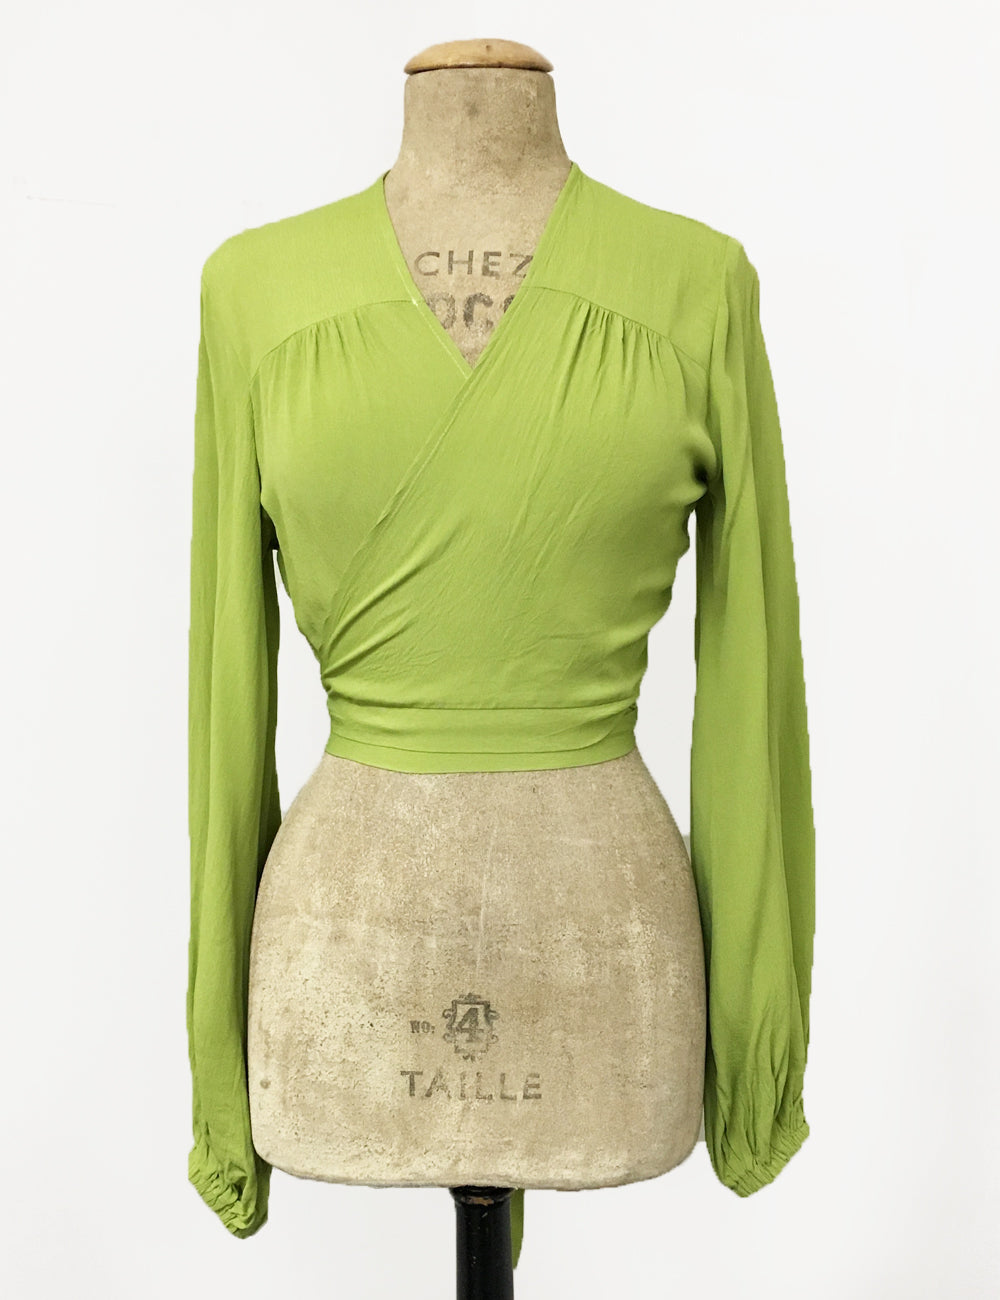 Vintage Tops & Retro Shirts, Halter Tops, Blouses Bright Chartreuse Green Balloon Sleeve Babaloo Tie Crop Top $88.00 AT vintagedancer.com